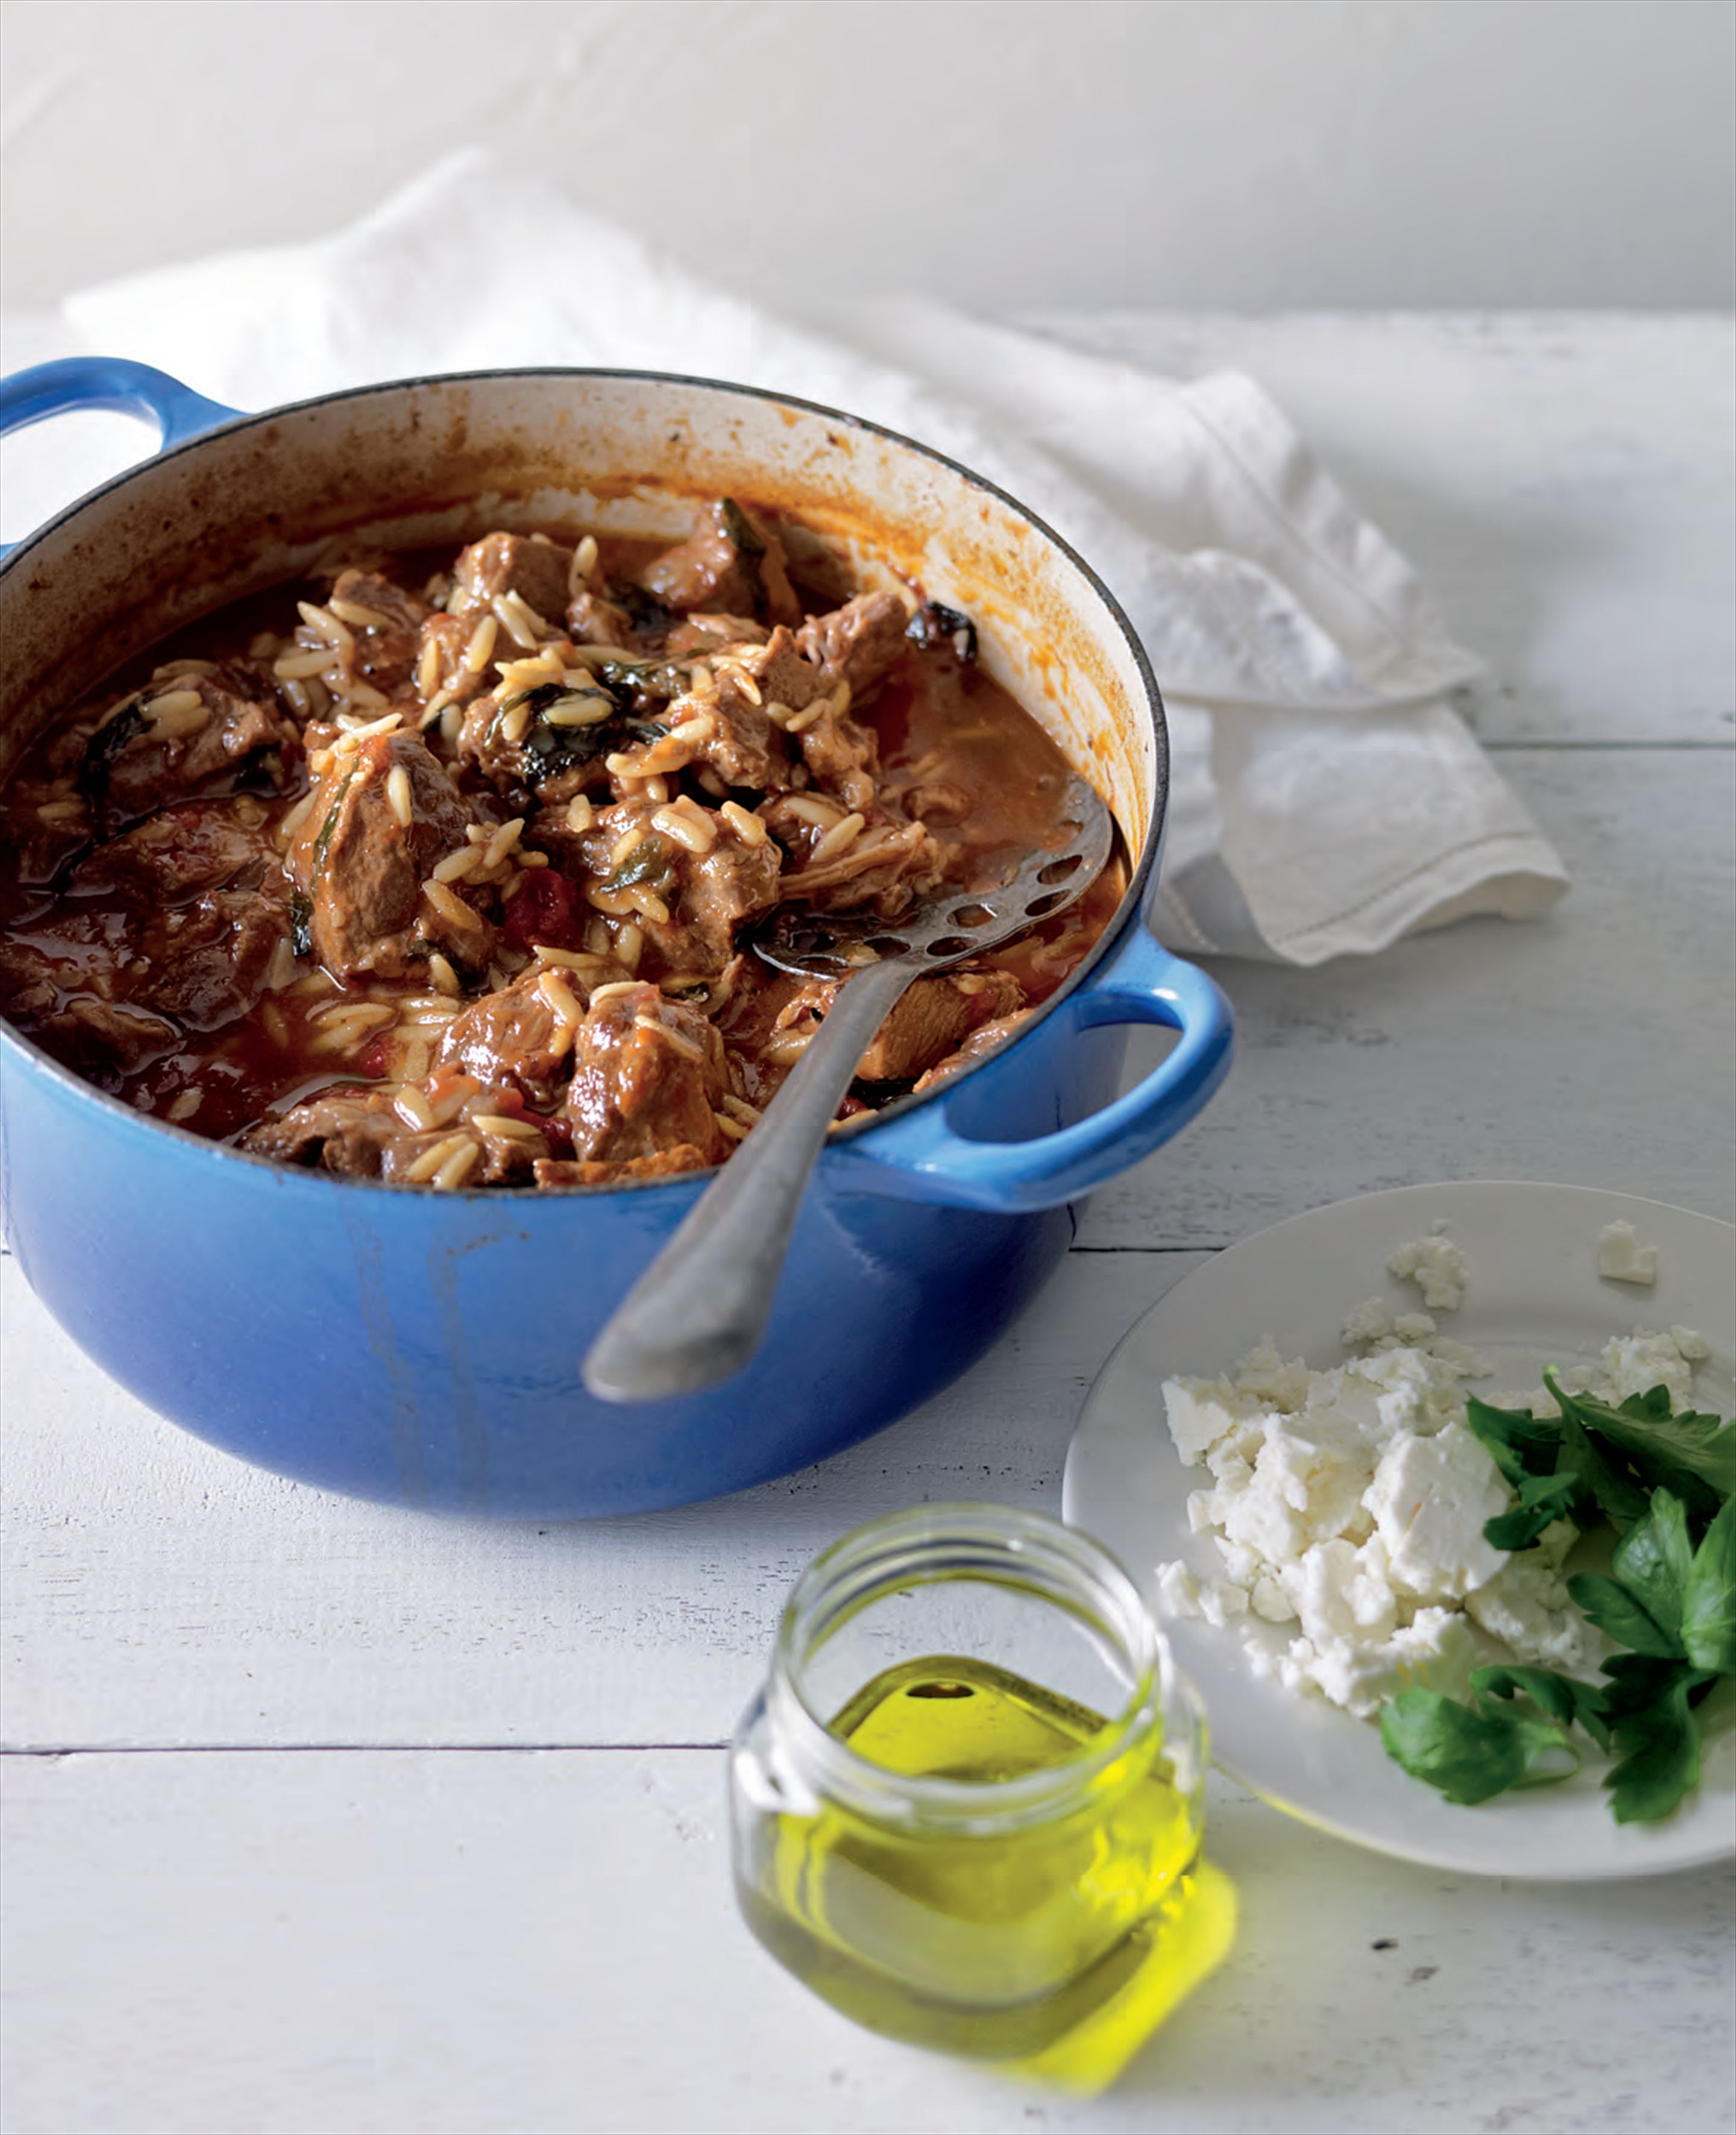 Braised veal with orzo